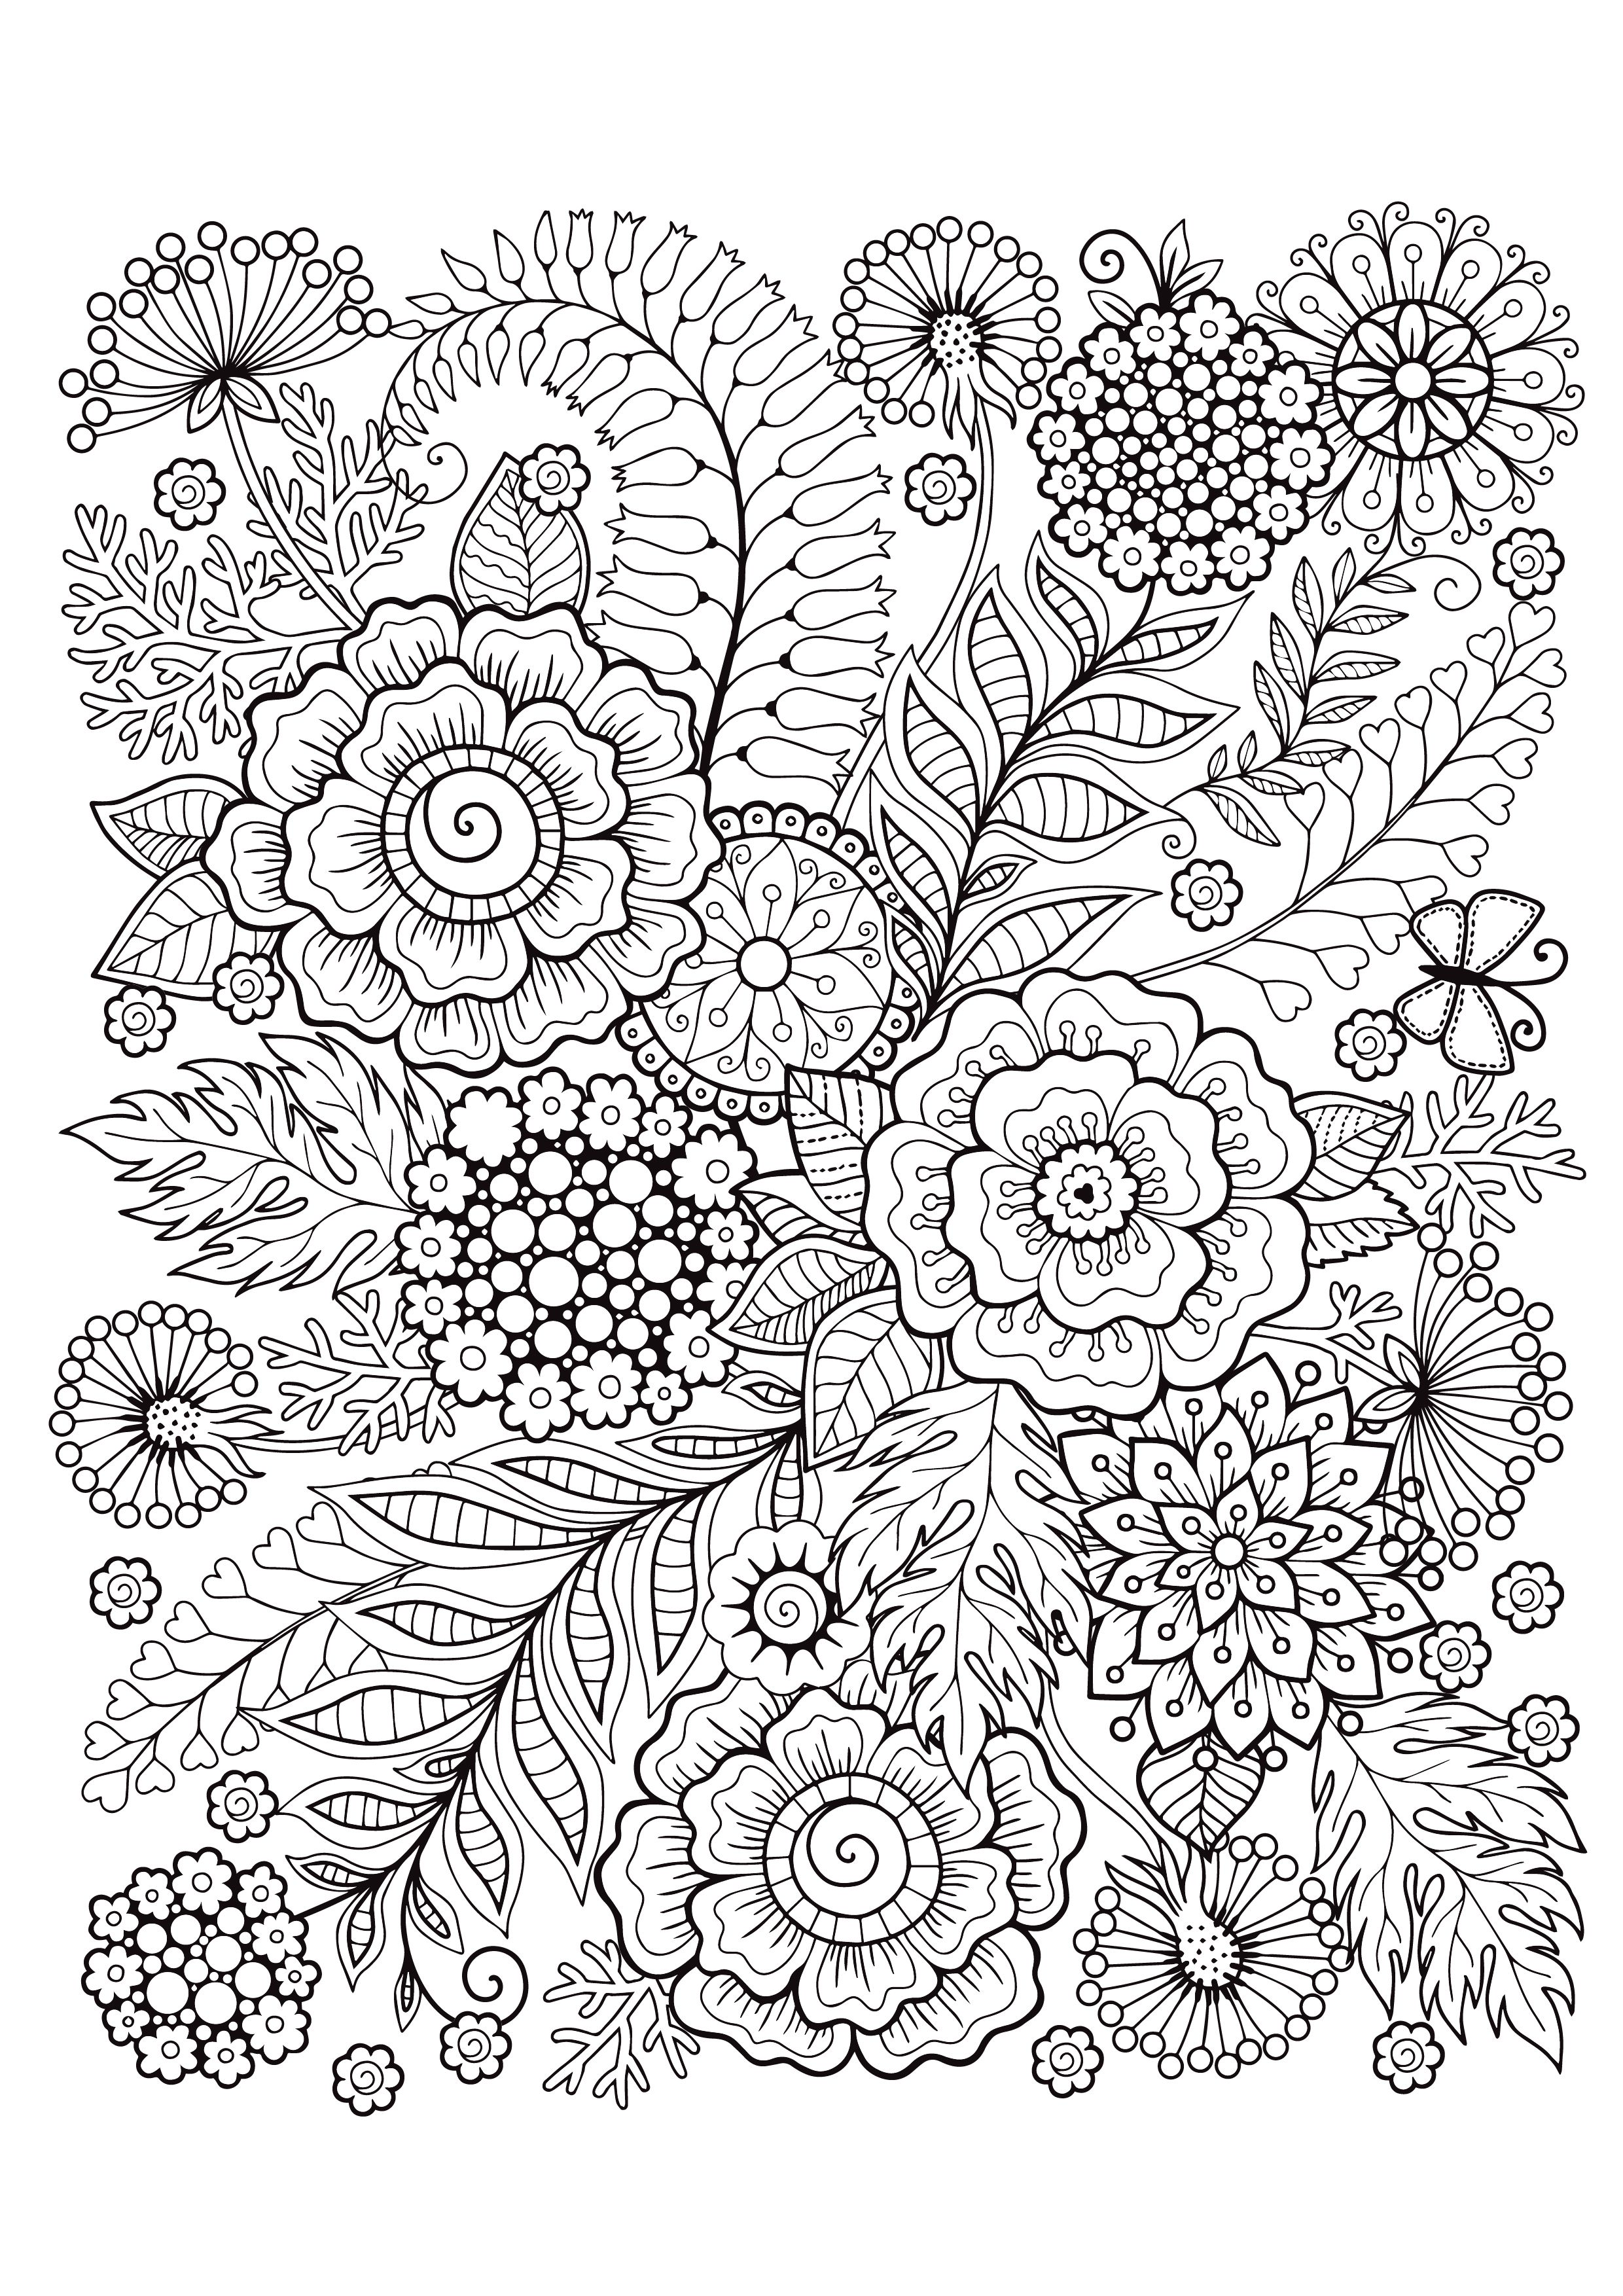 Mindfulness Coloring Coloring Book Art Mindfulness Colouring Zentangle Patterns